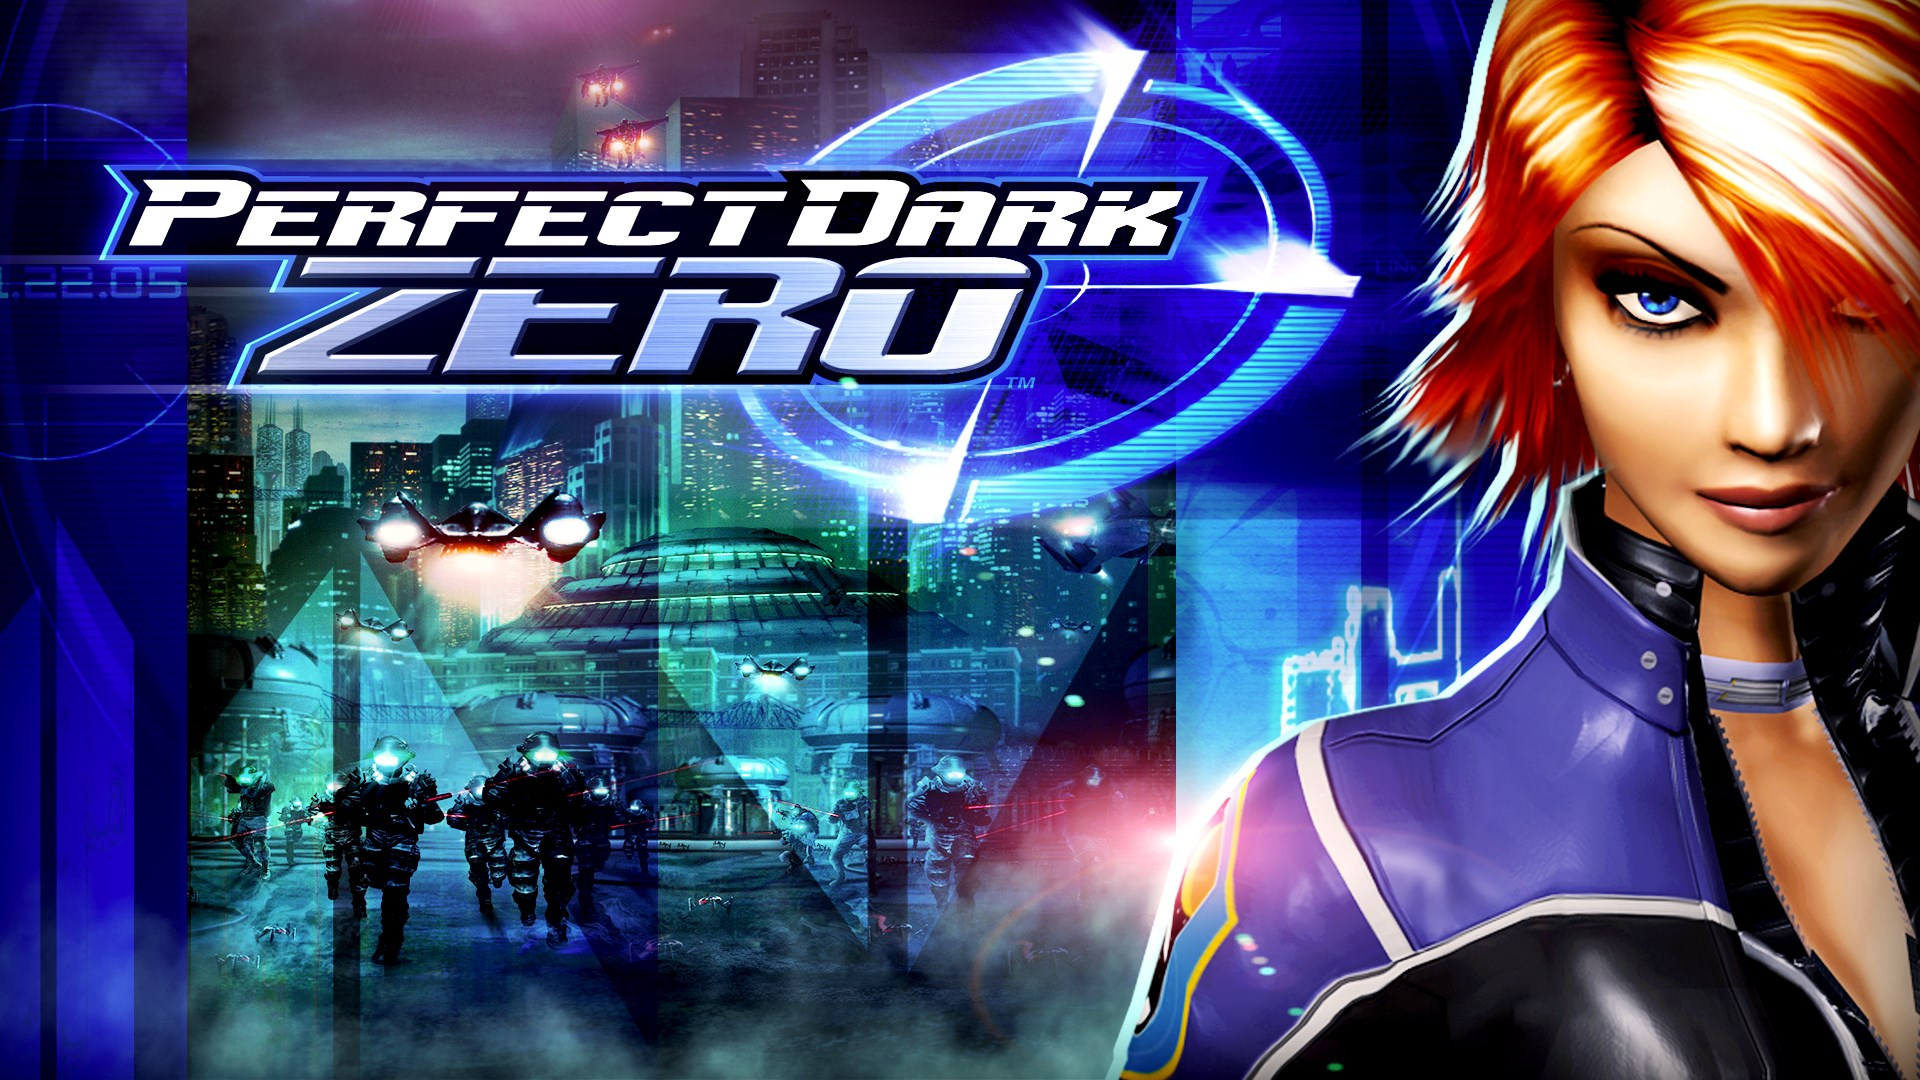 Perfect Dark Zero is the latest game in the Perfect Dark franchise, released in 2005.